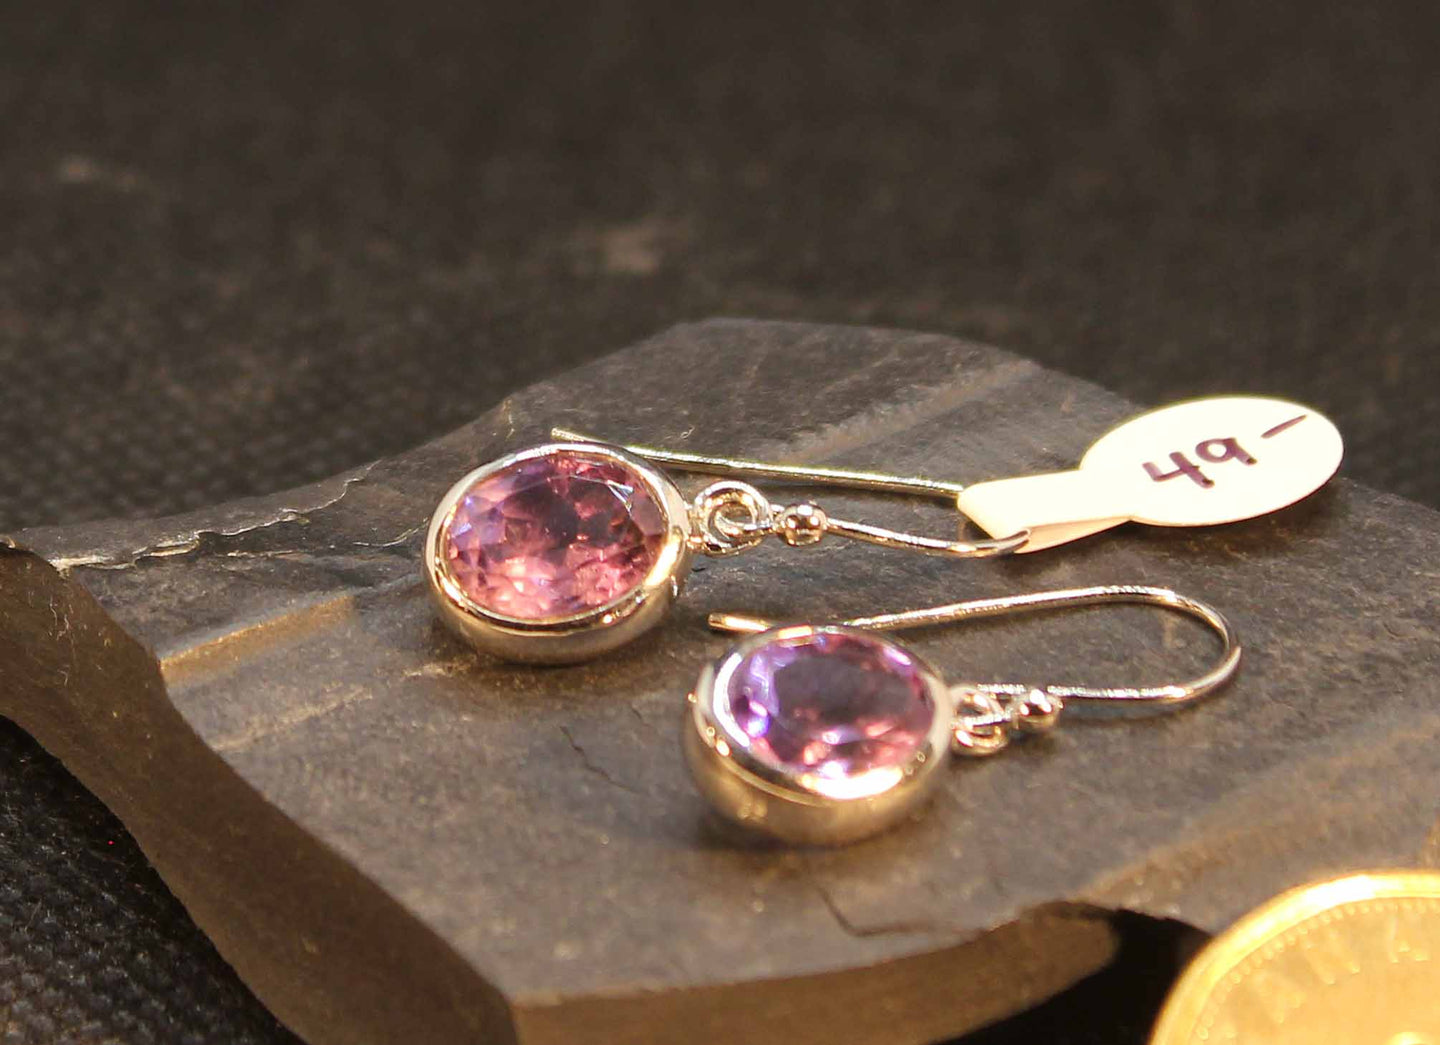 High quality amethyst earring in sterling silver with rhodium finish